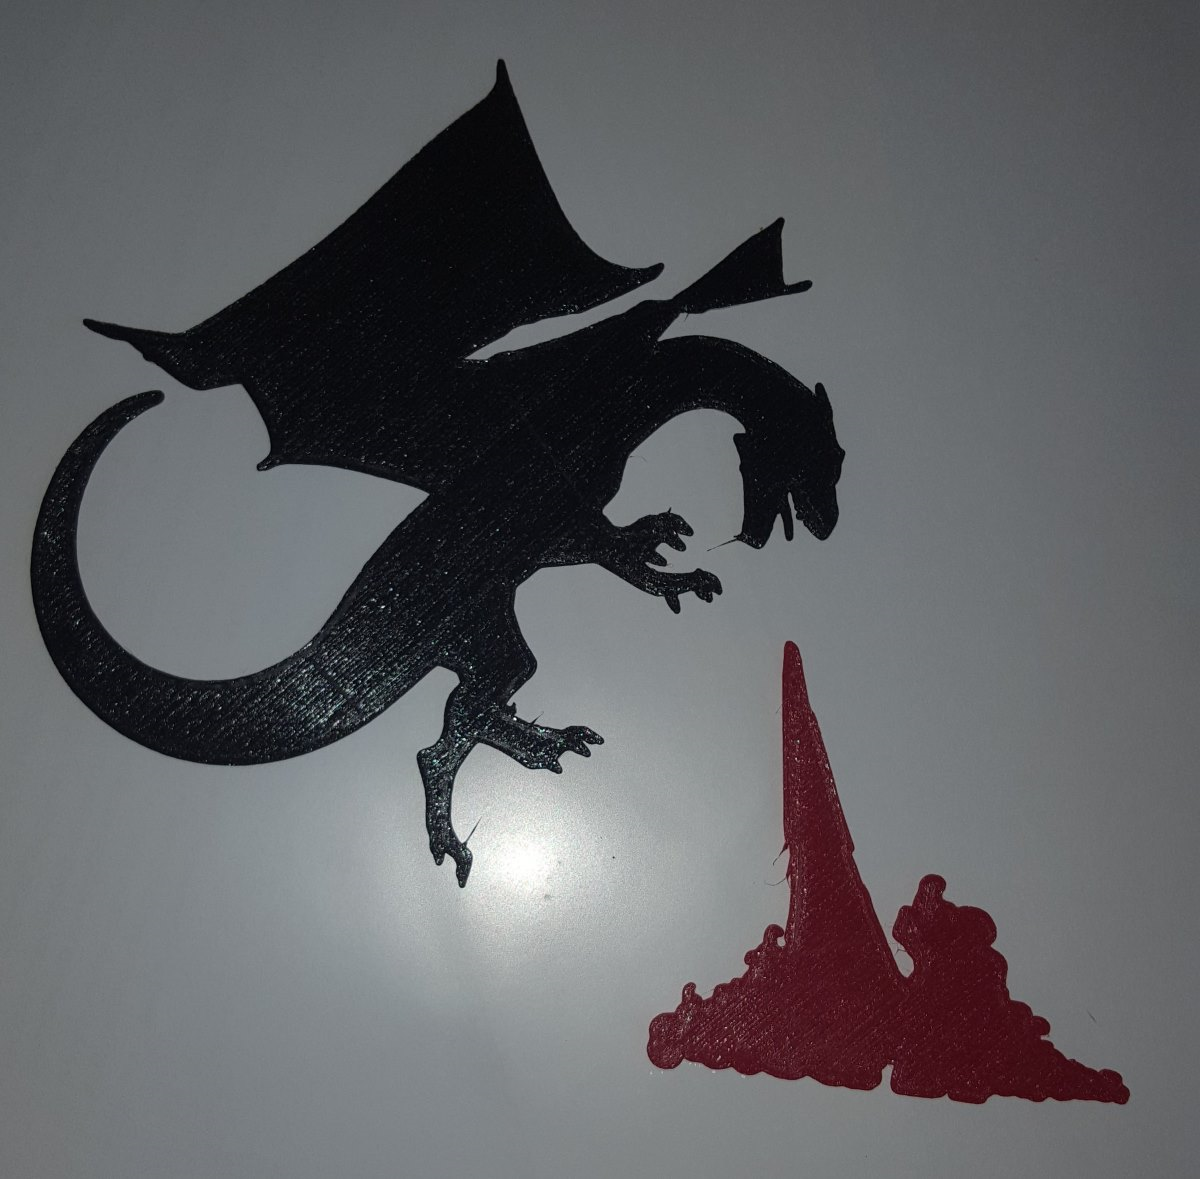 dragon with fire blast.png Download free STL file Dragons for Everyone! • 3D printing design, barb_3dprintny